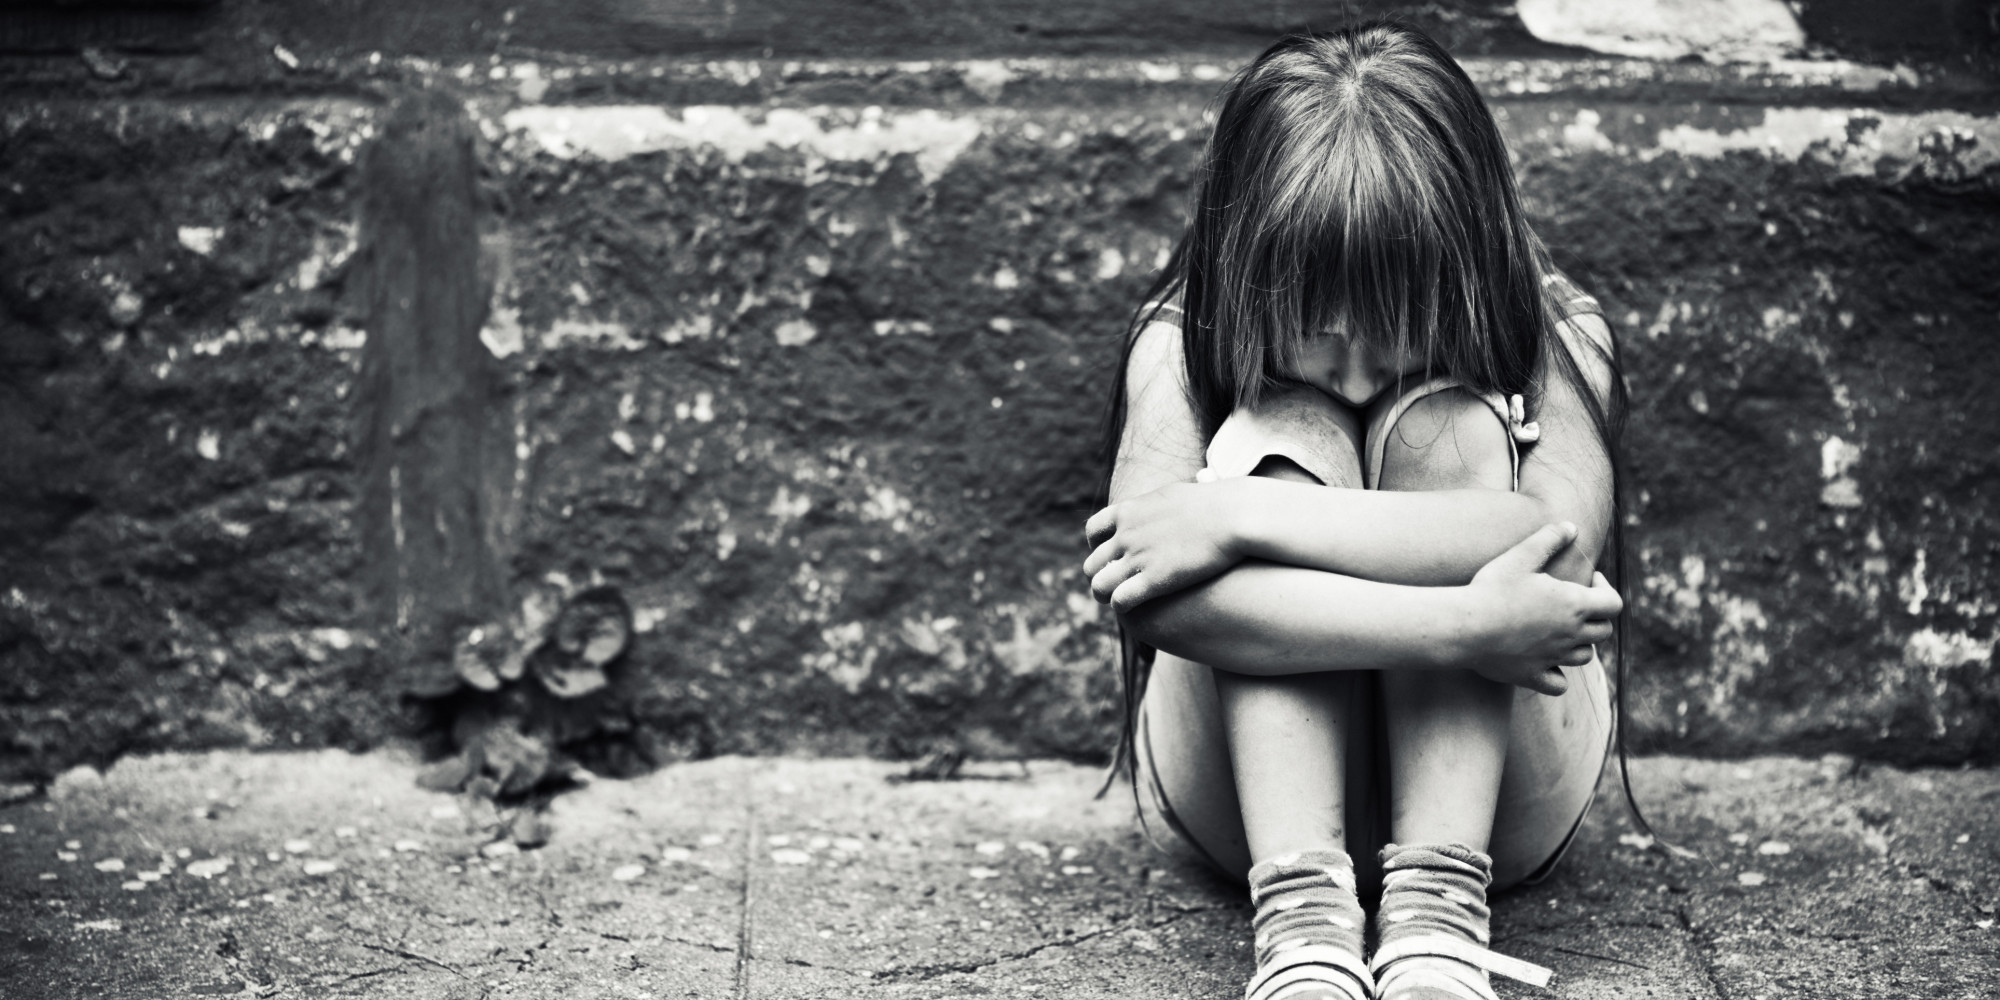 abused children as a vulnerable population